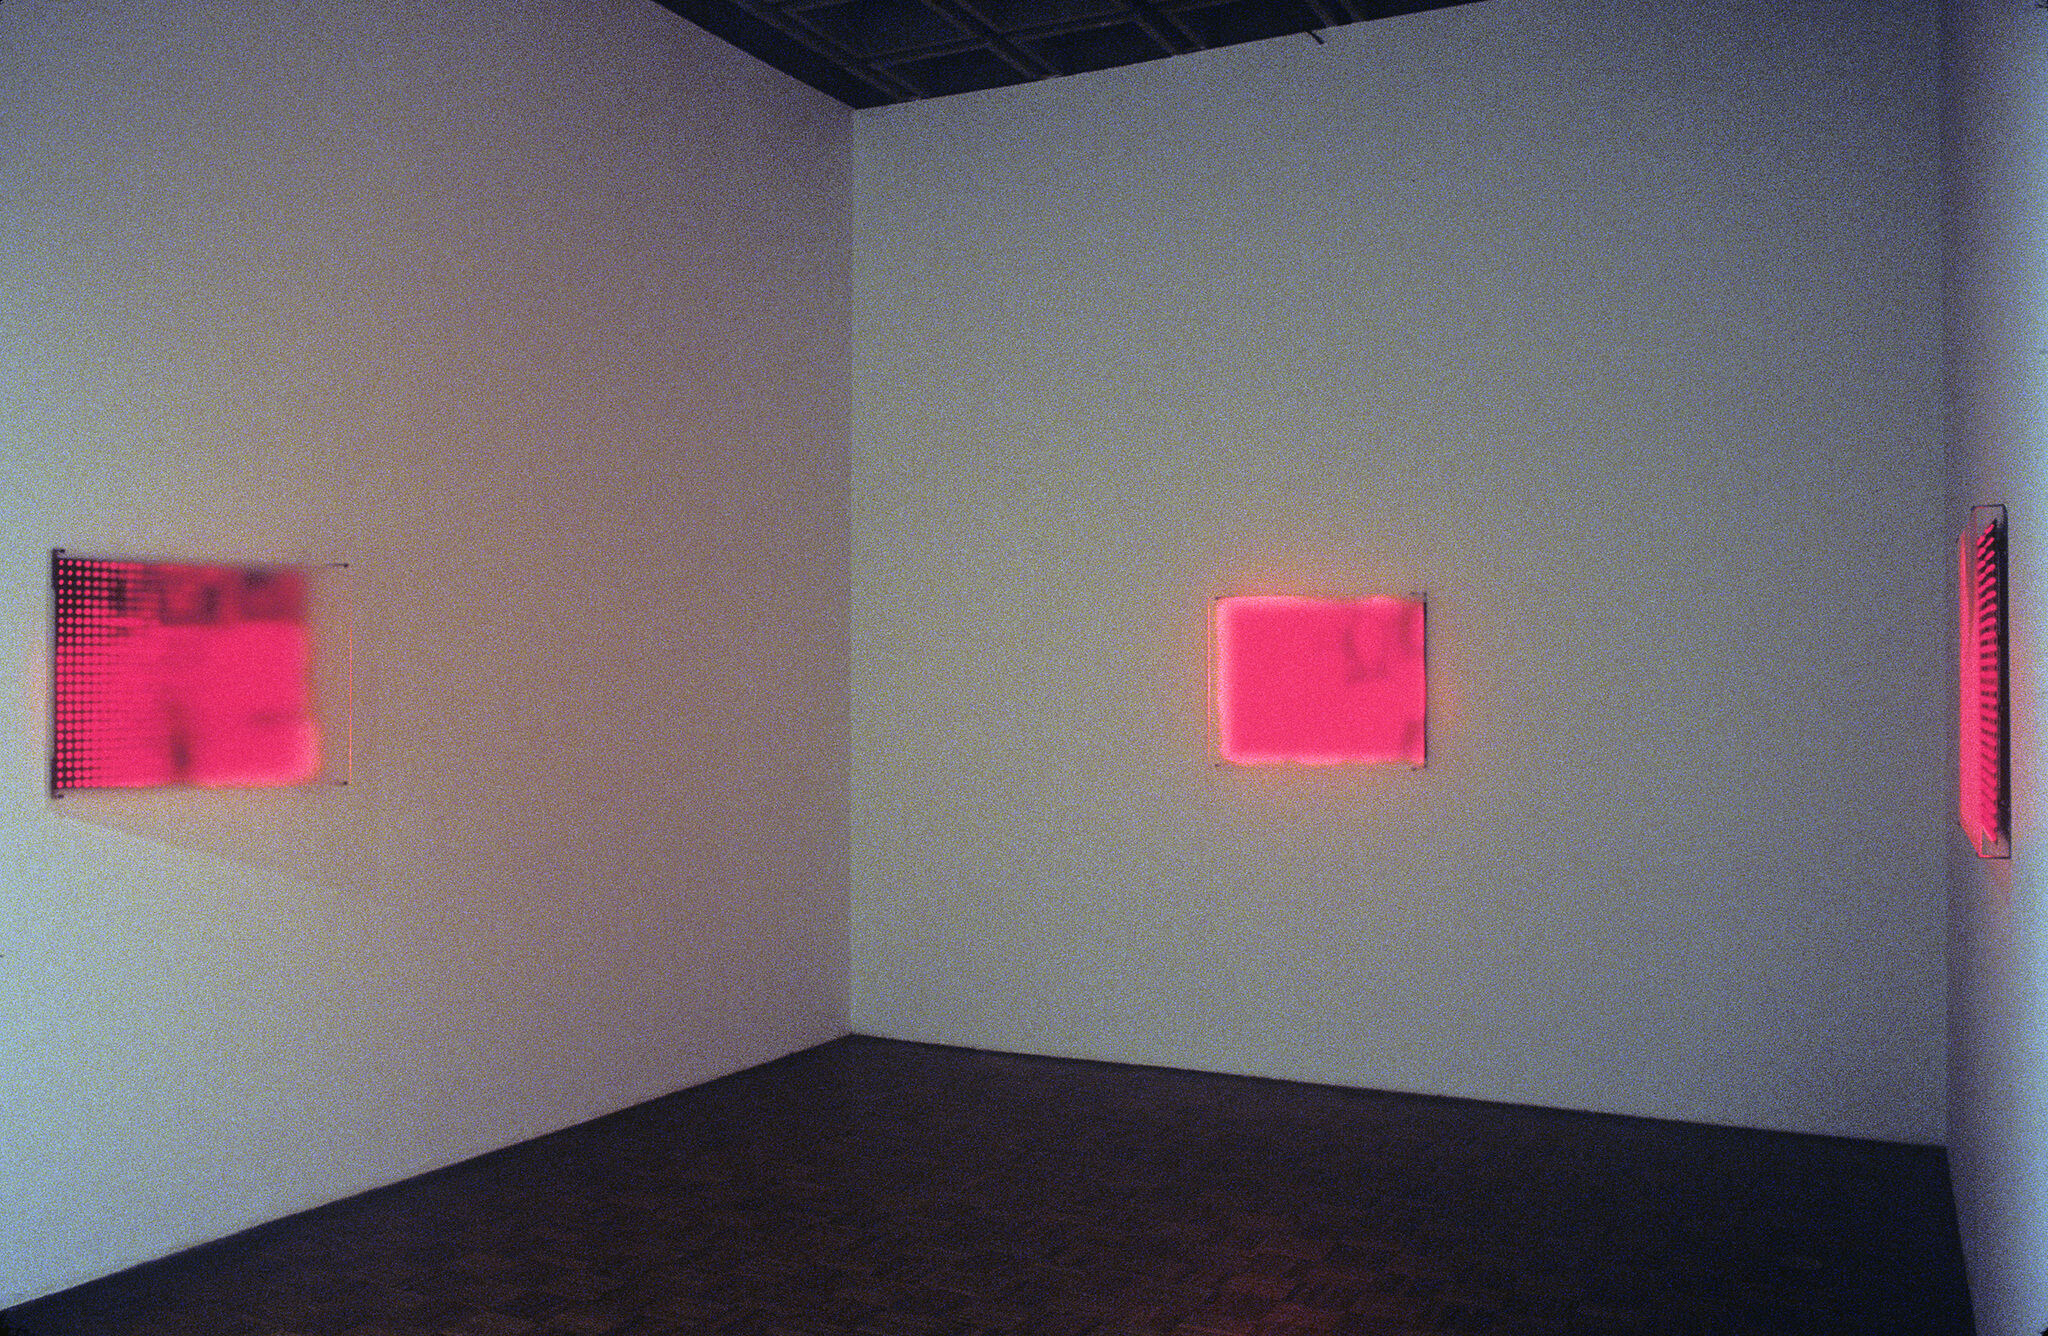 A gallery with neon pink works of art on display.